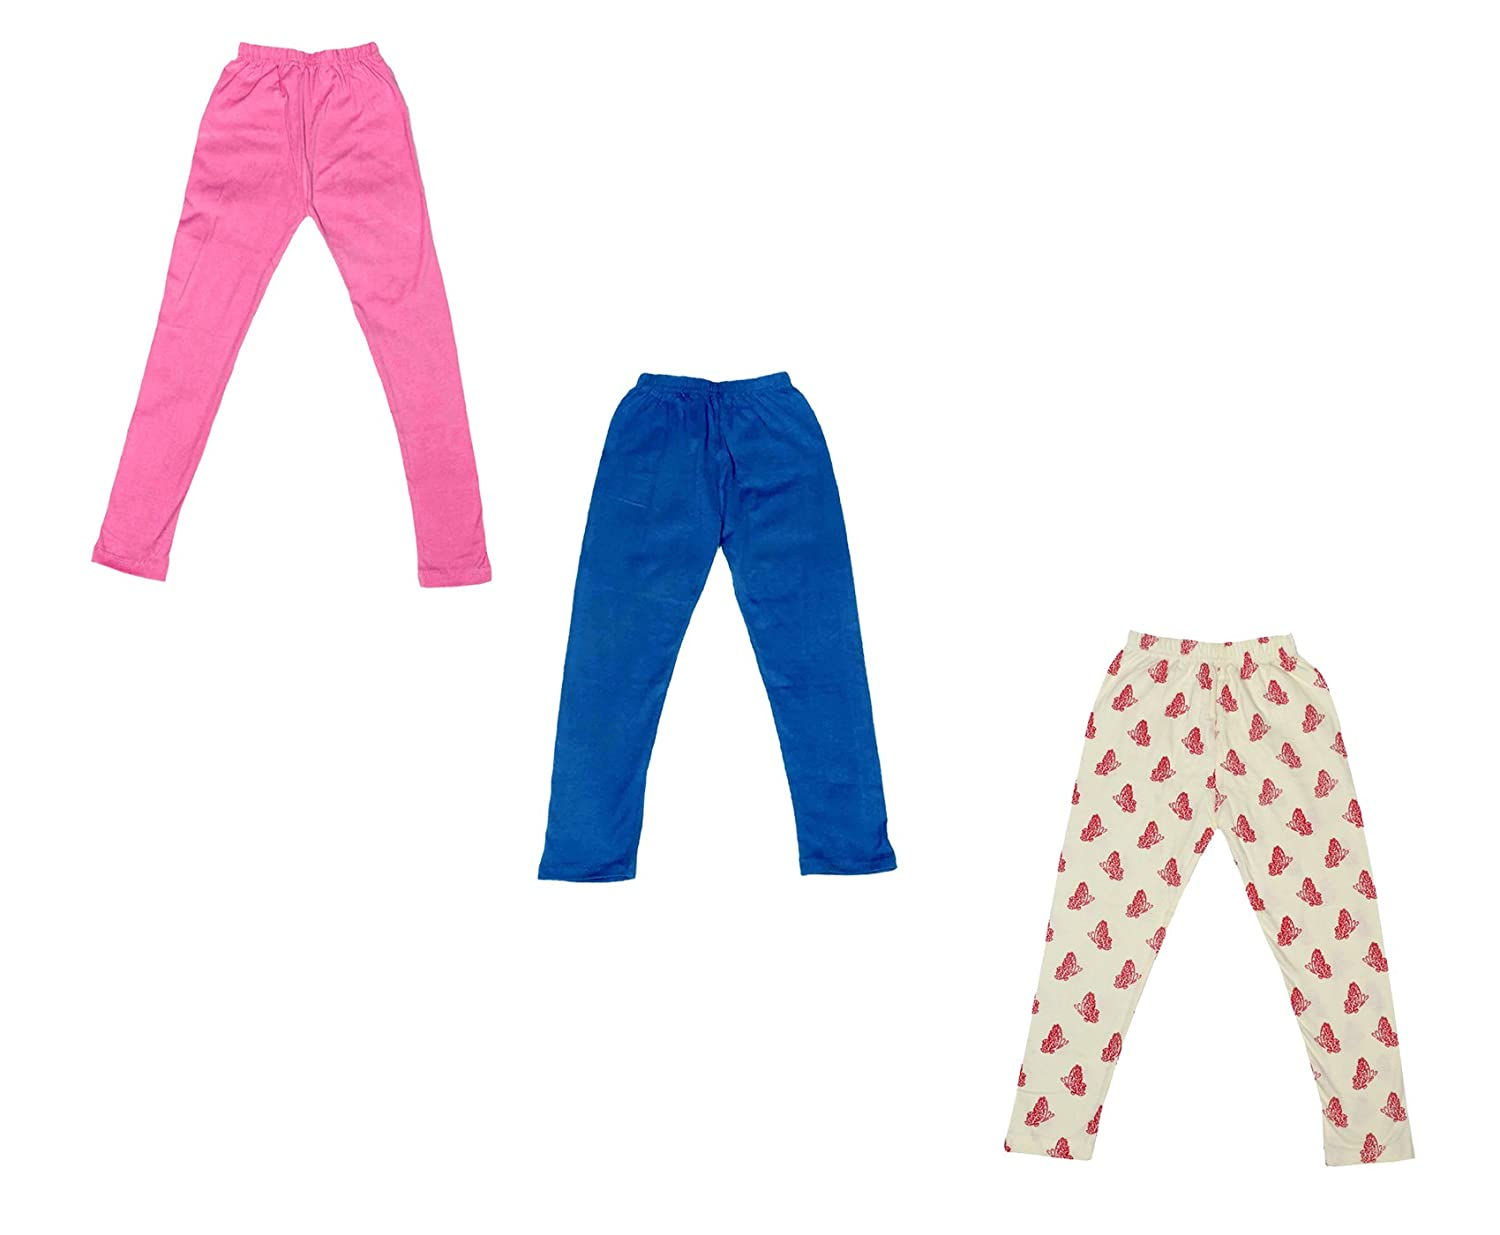 Indistar 2 Solid and 1 Printed Ankle Length Legging For Girls Pack of 3